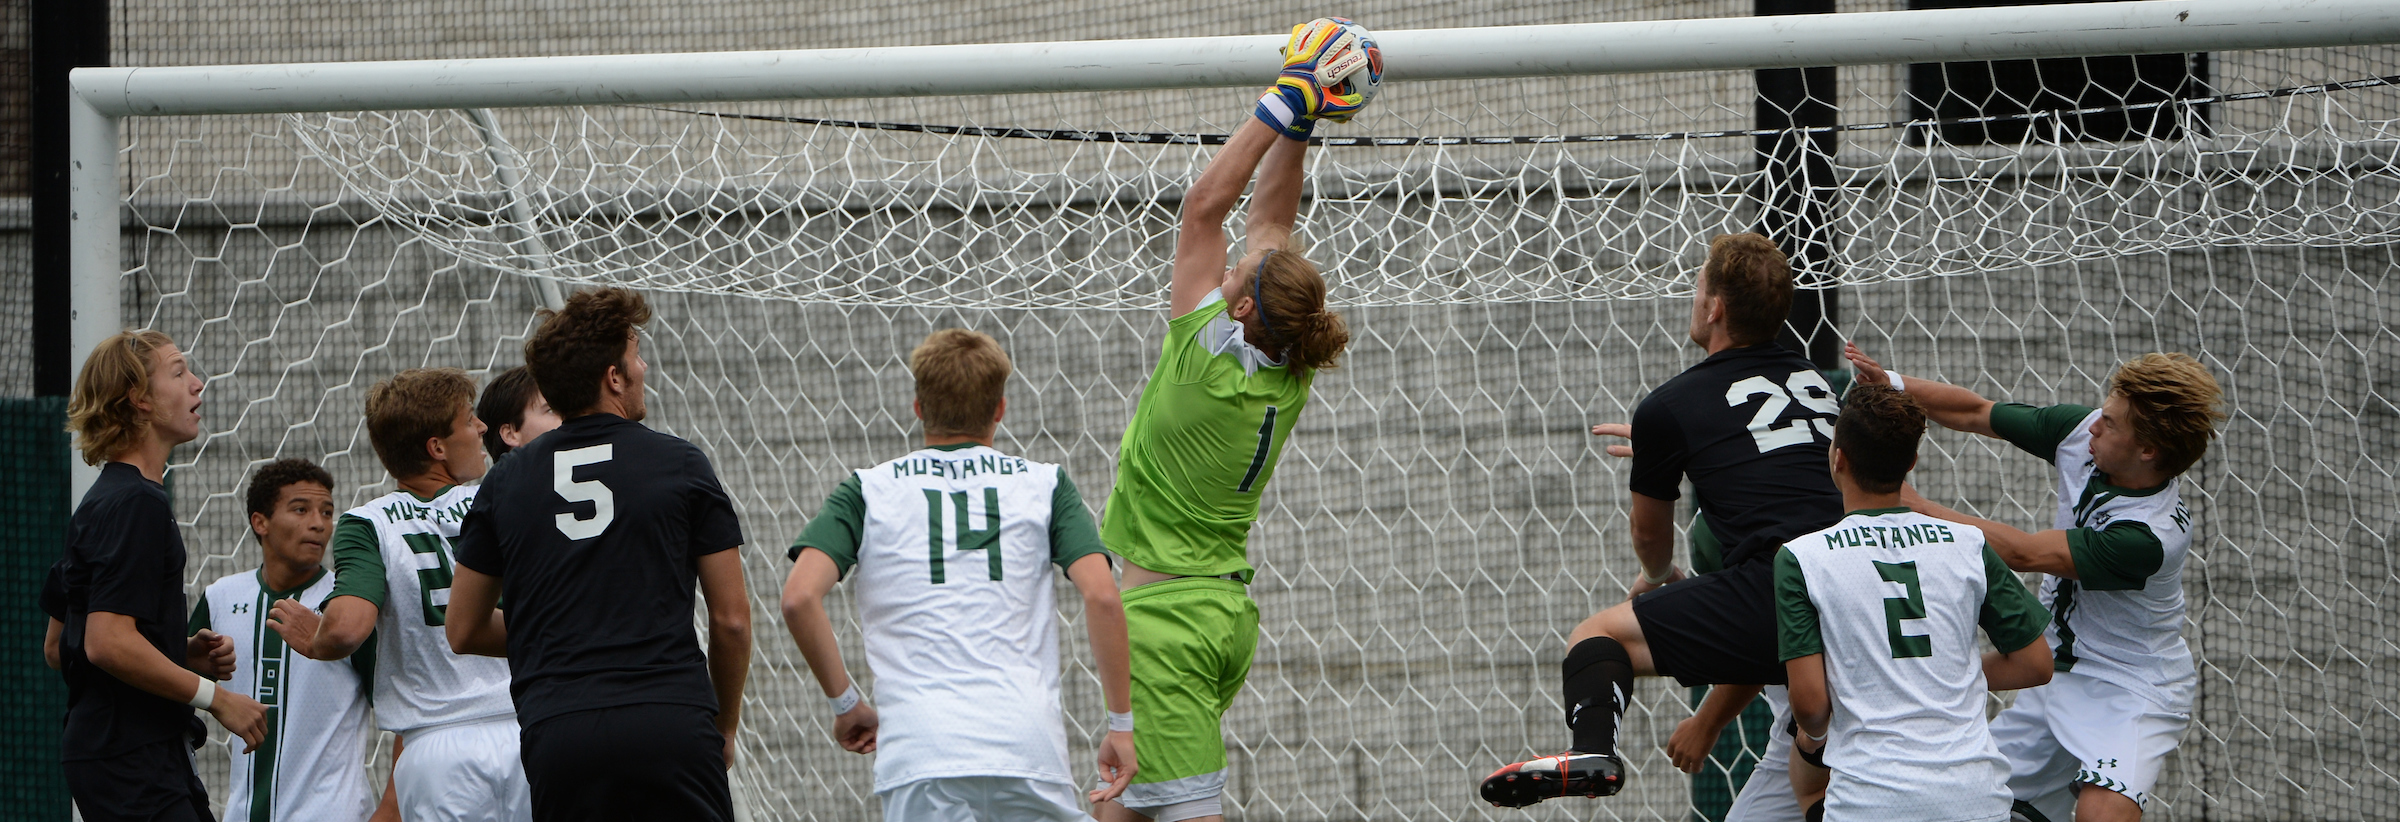 Brown Totals 11 Saves, Mustangs Fall on Road at Alvernia